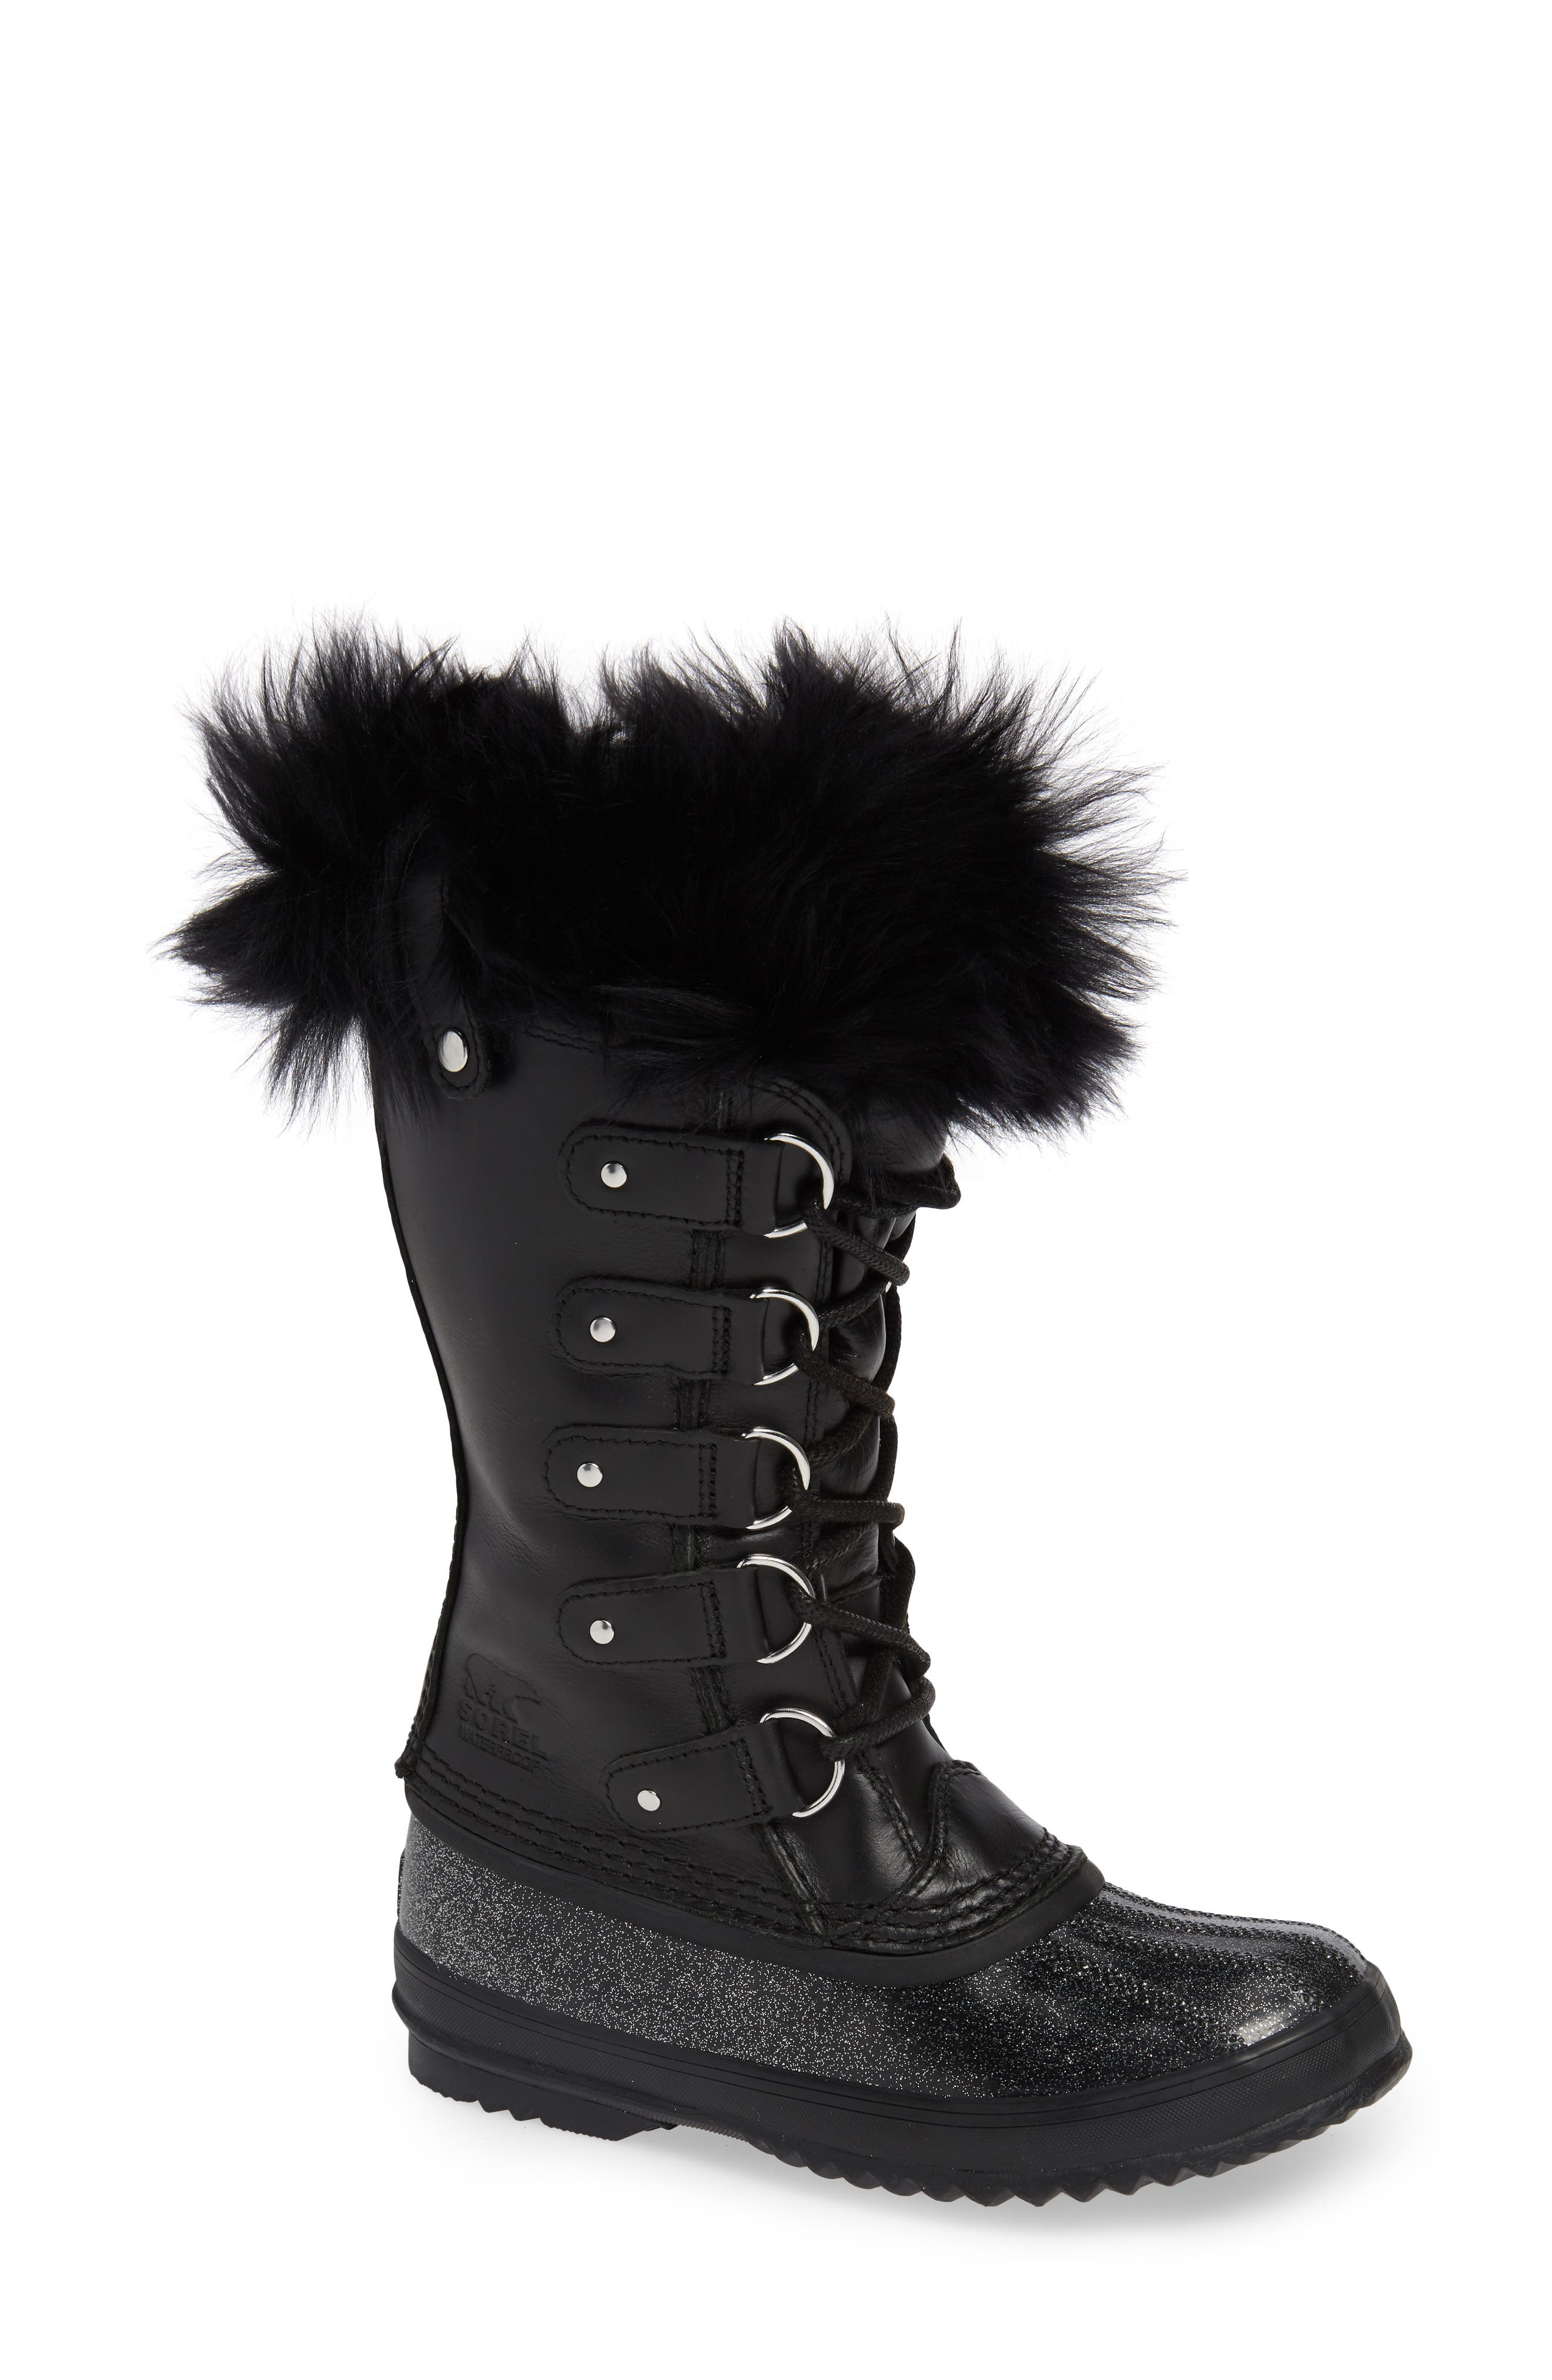 Joan of Arctic<sup>™</sup> Lux Waterproof Winter Boot with Genuine Shearling,                         Main,                         color, 010